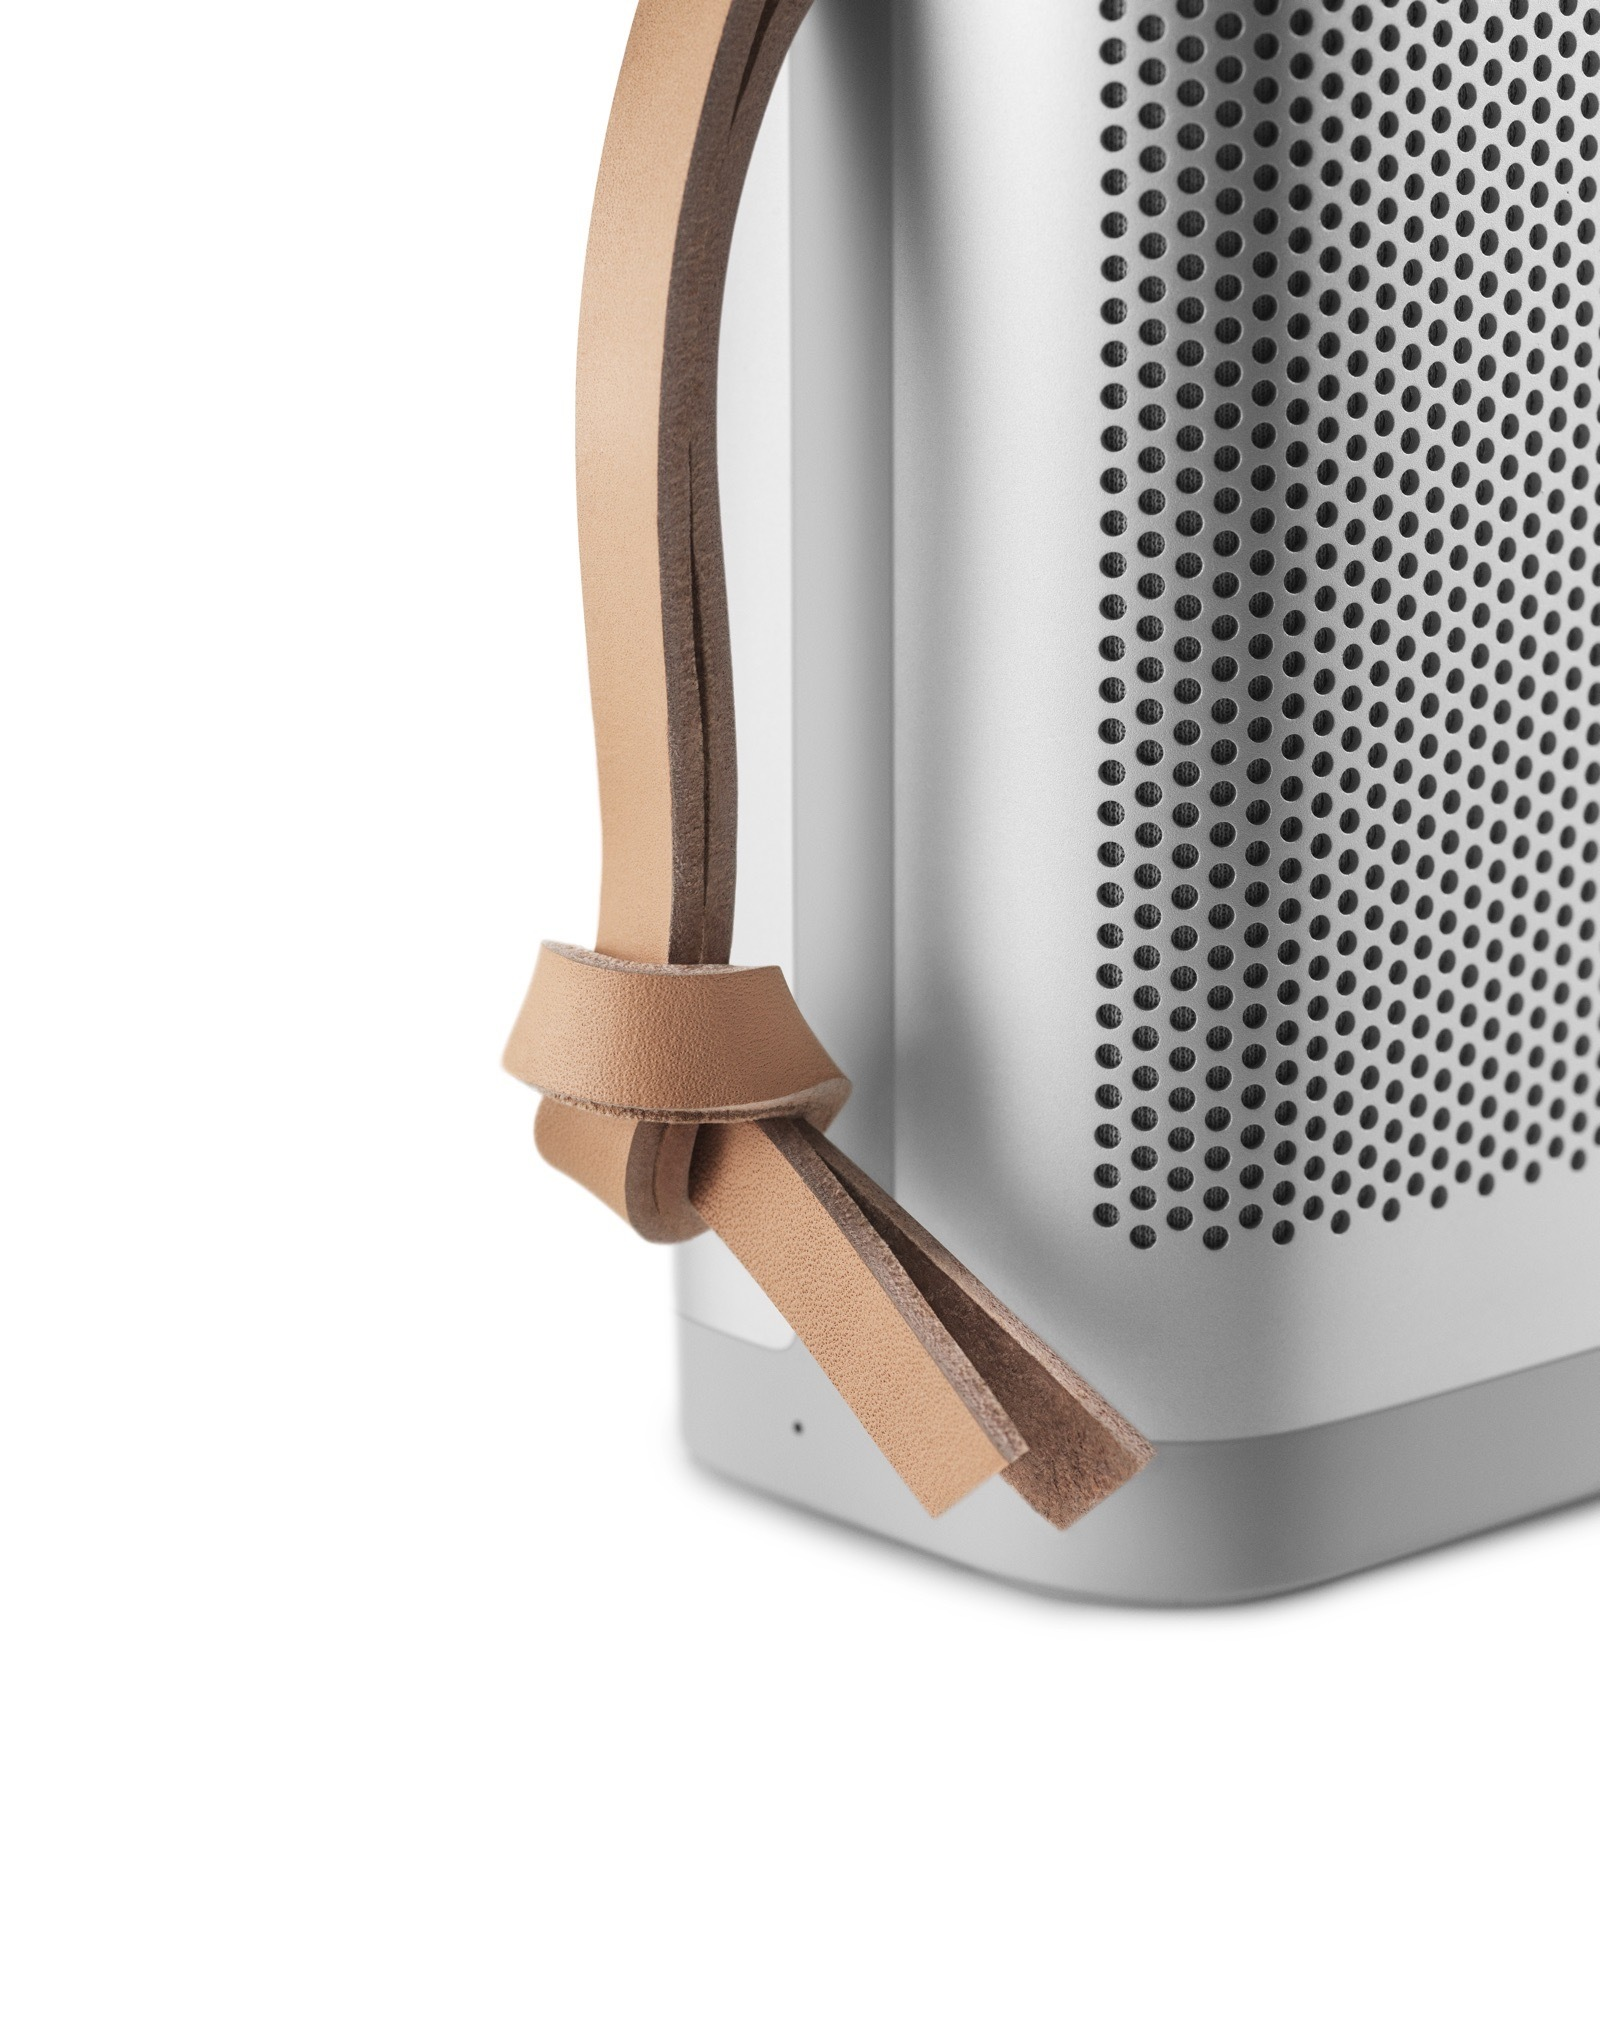 beoplay-p6-natural-40599881055-o-1.jpg